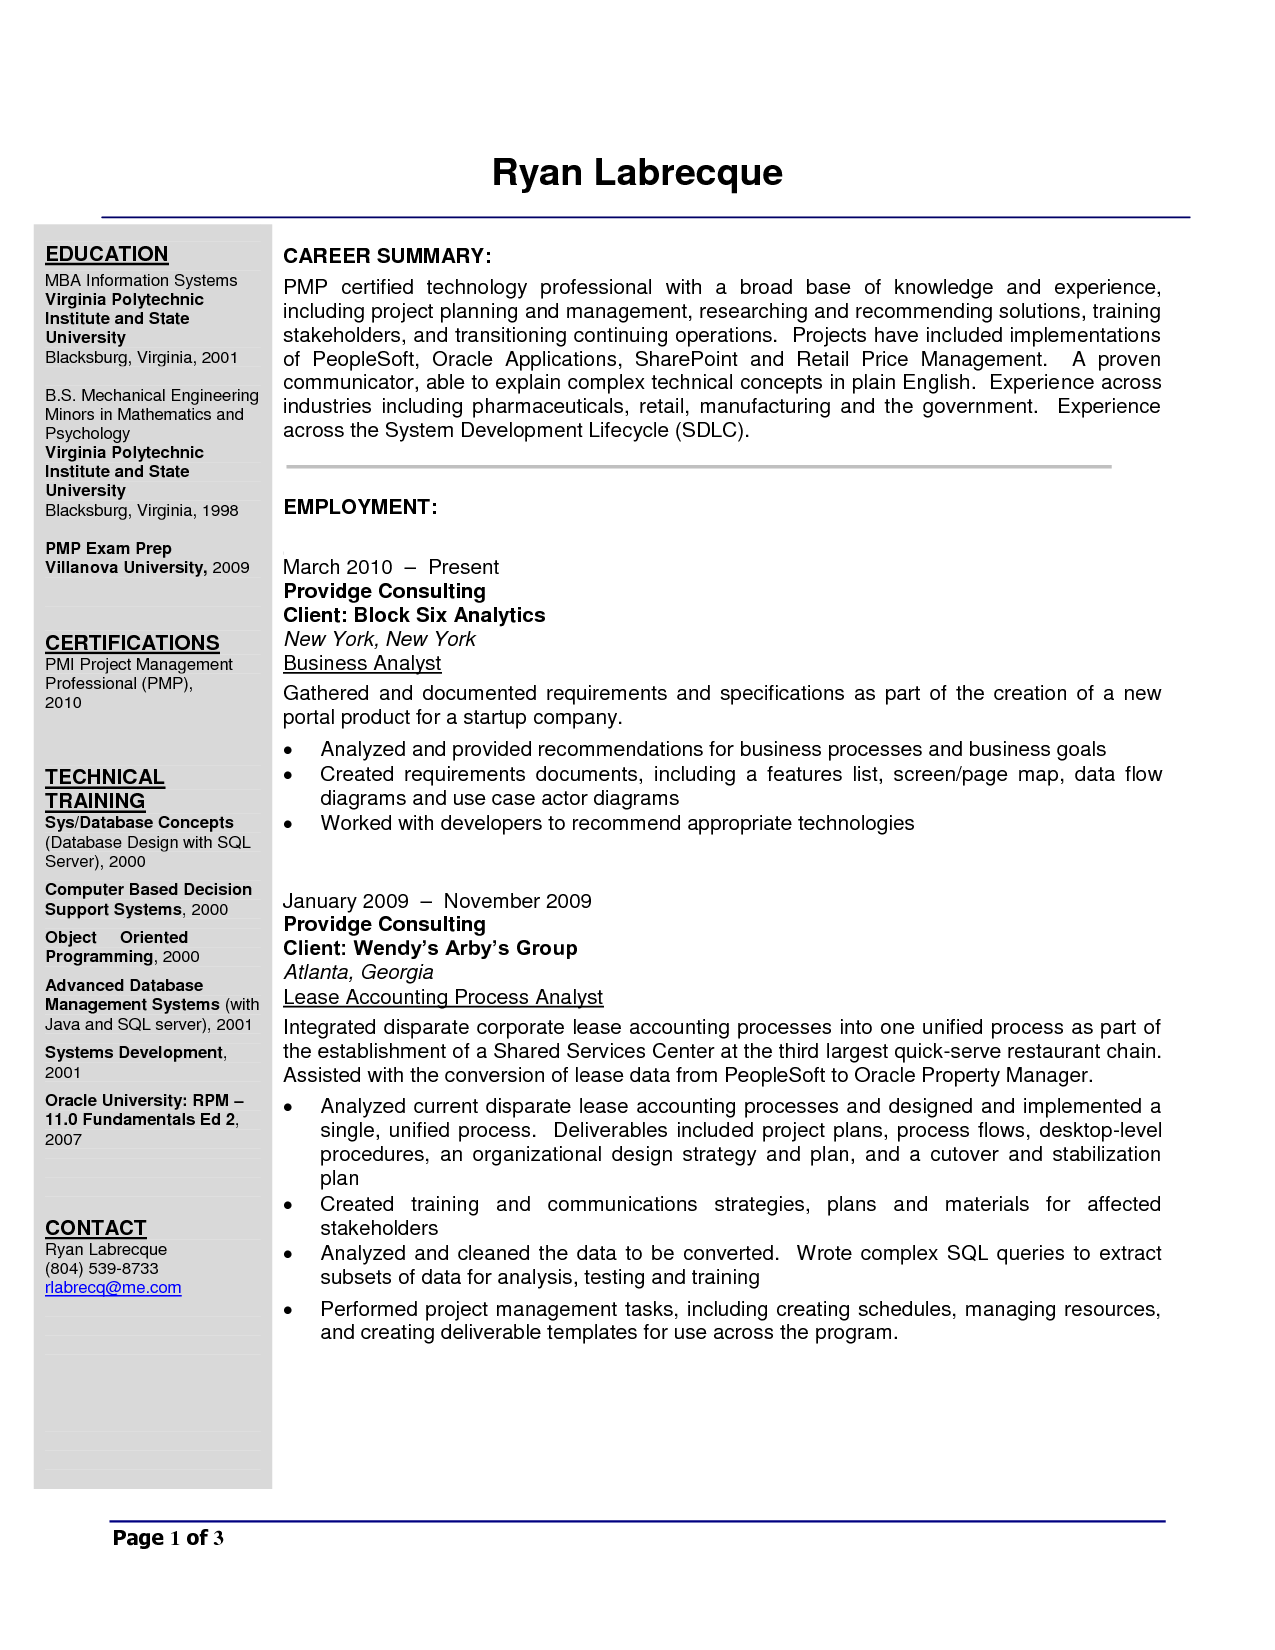 Business Analyst Cover Letter Image collections - Cover Letter Ideas